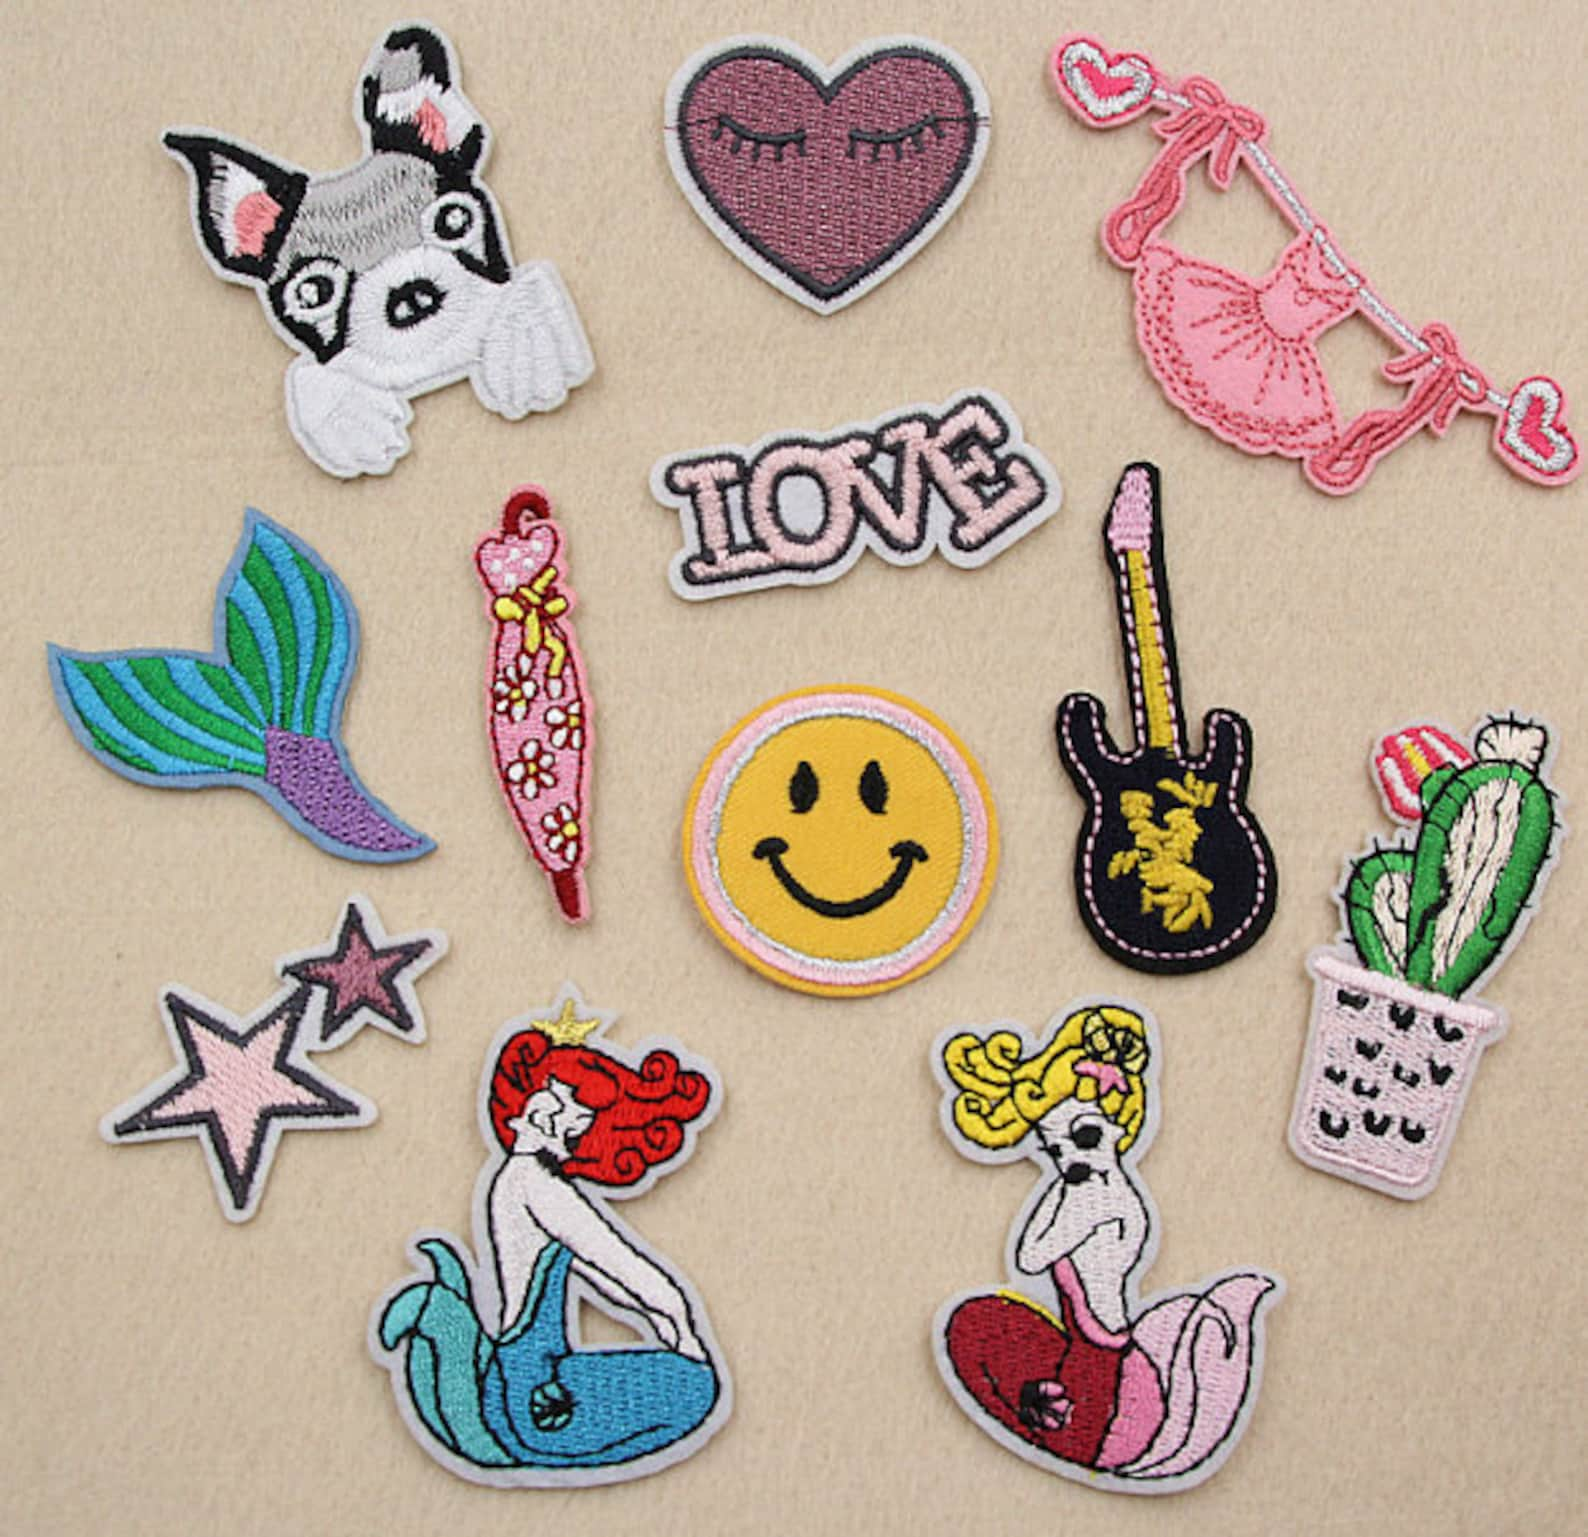 1pcs 9.5x3.5cm embroidery pink ballet dress iron on patch embroidered patches applique sewing supply